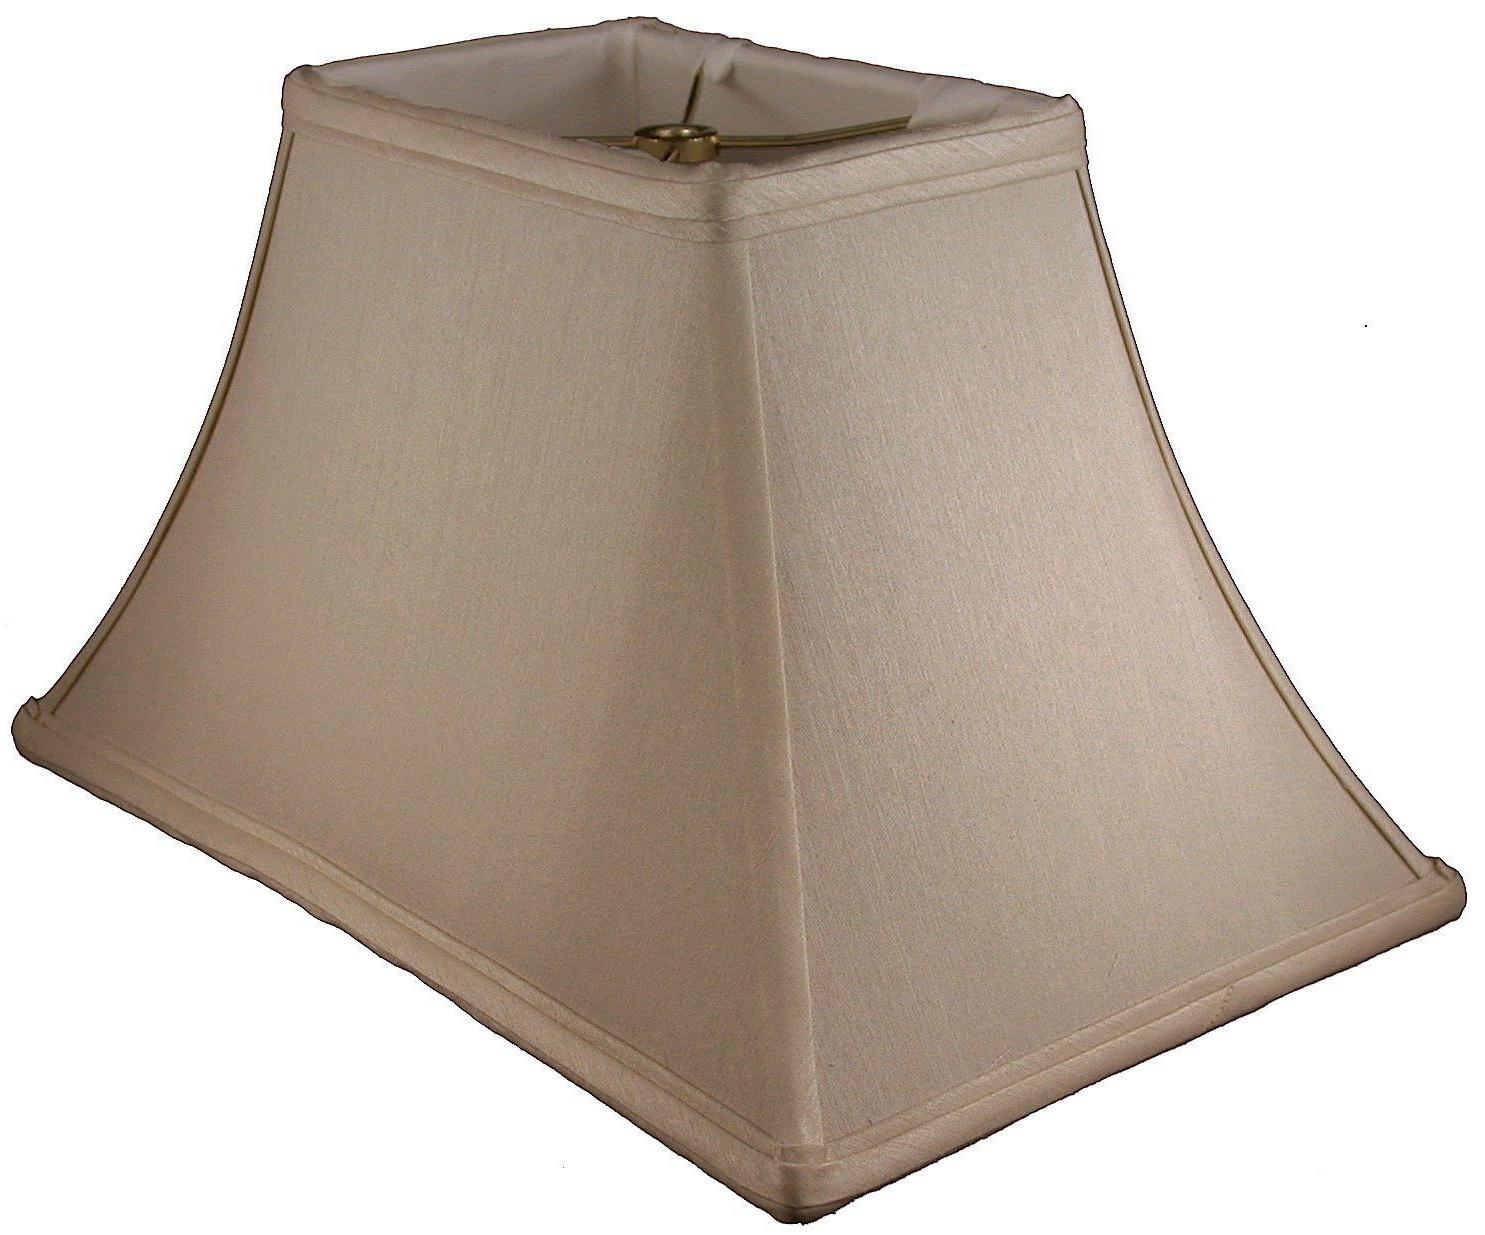 American Pride Lampshade Co. 74-78094210 Rectangle Soft Tail